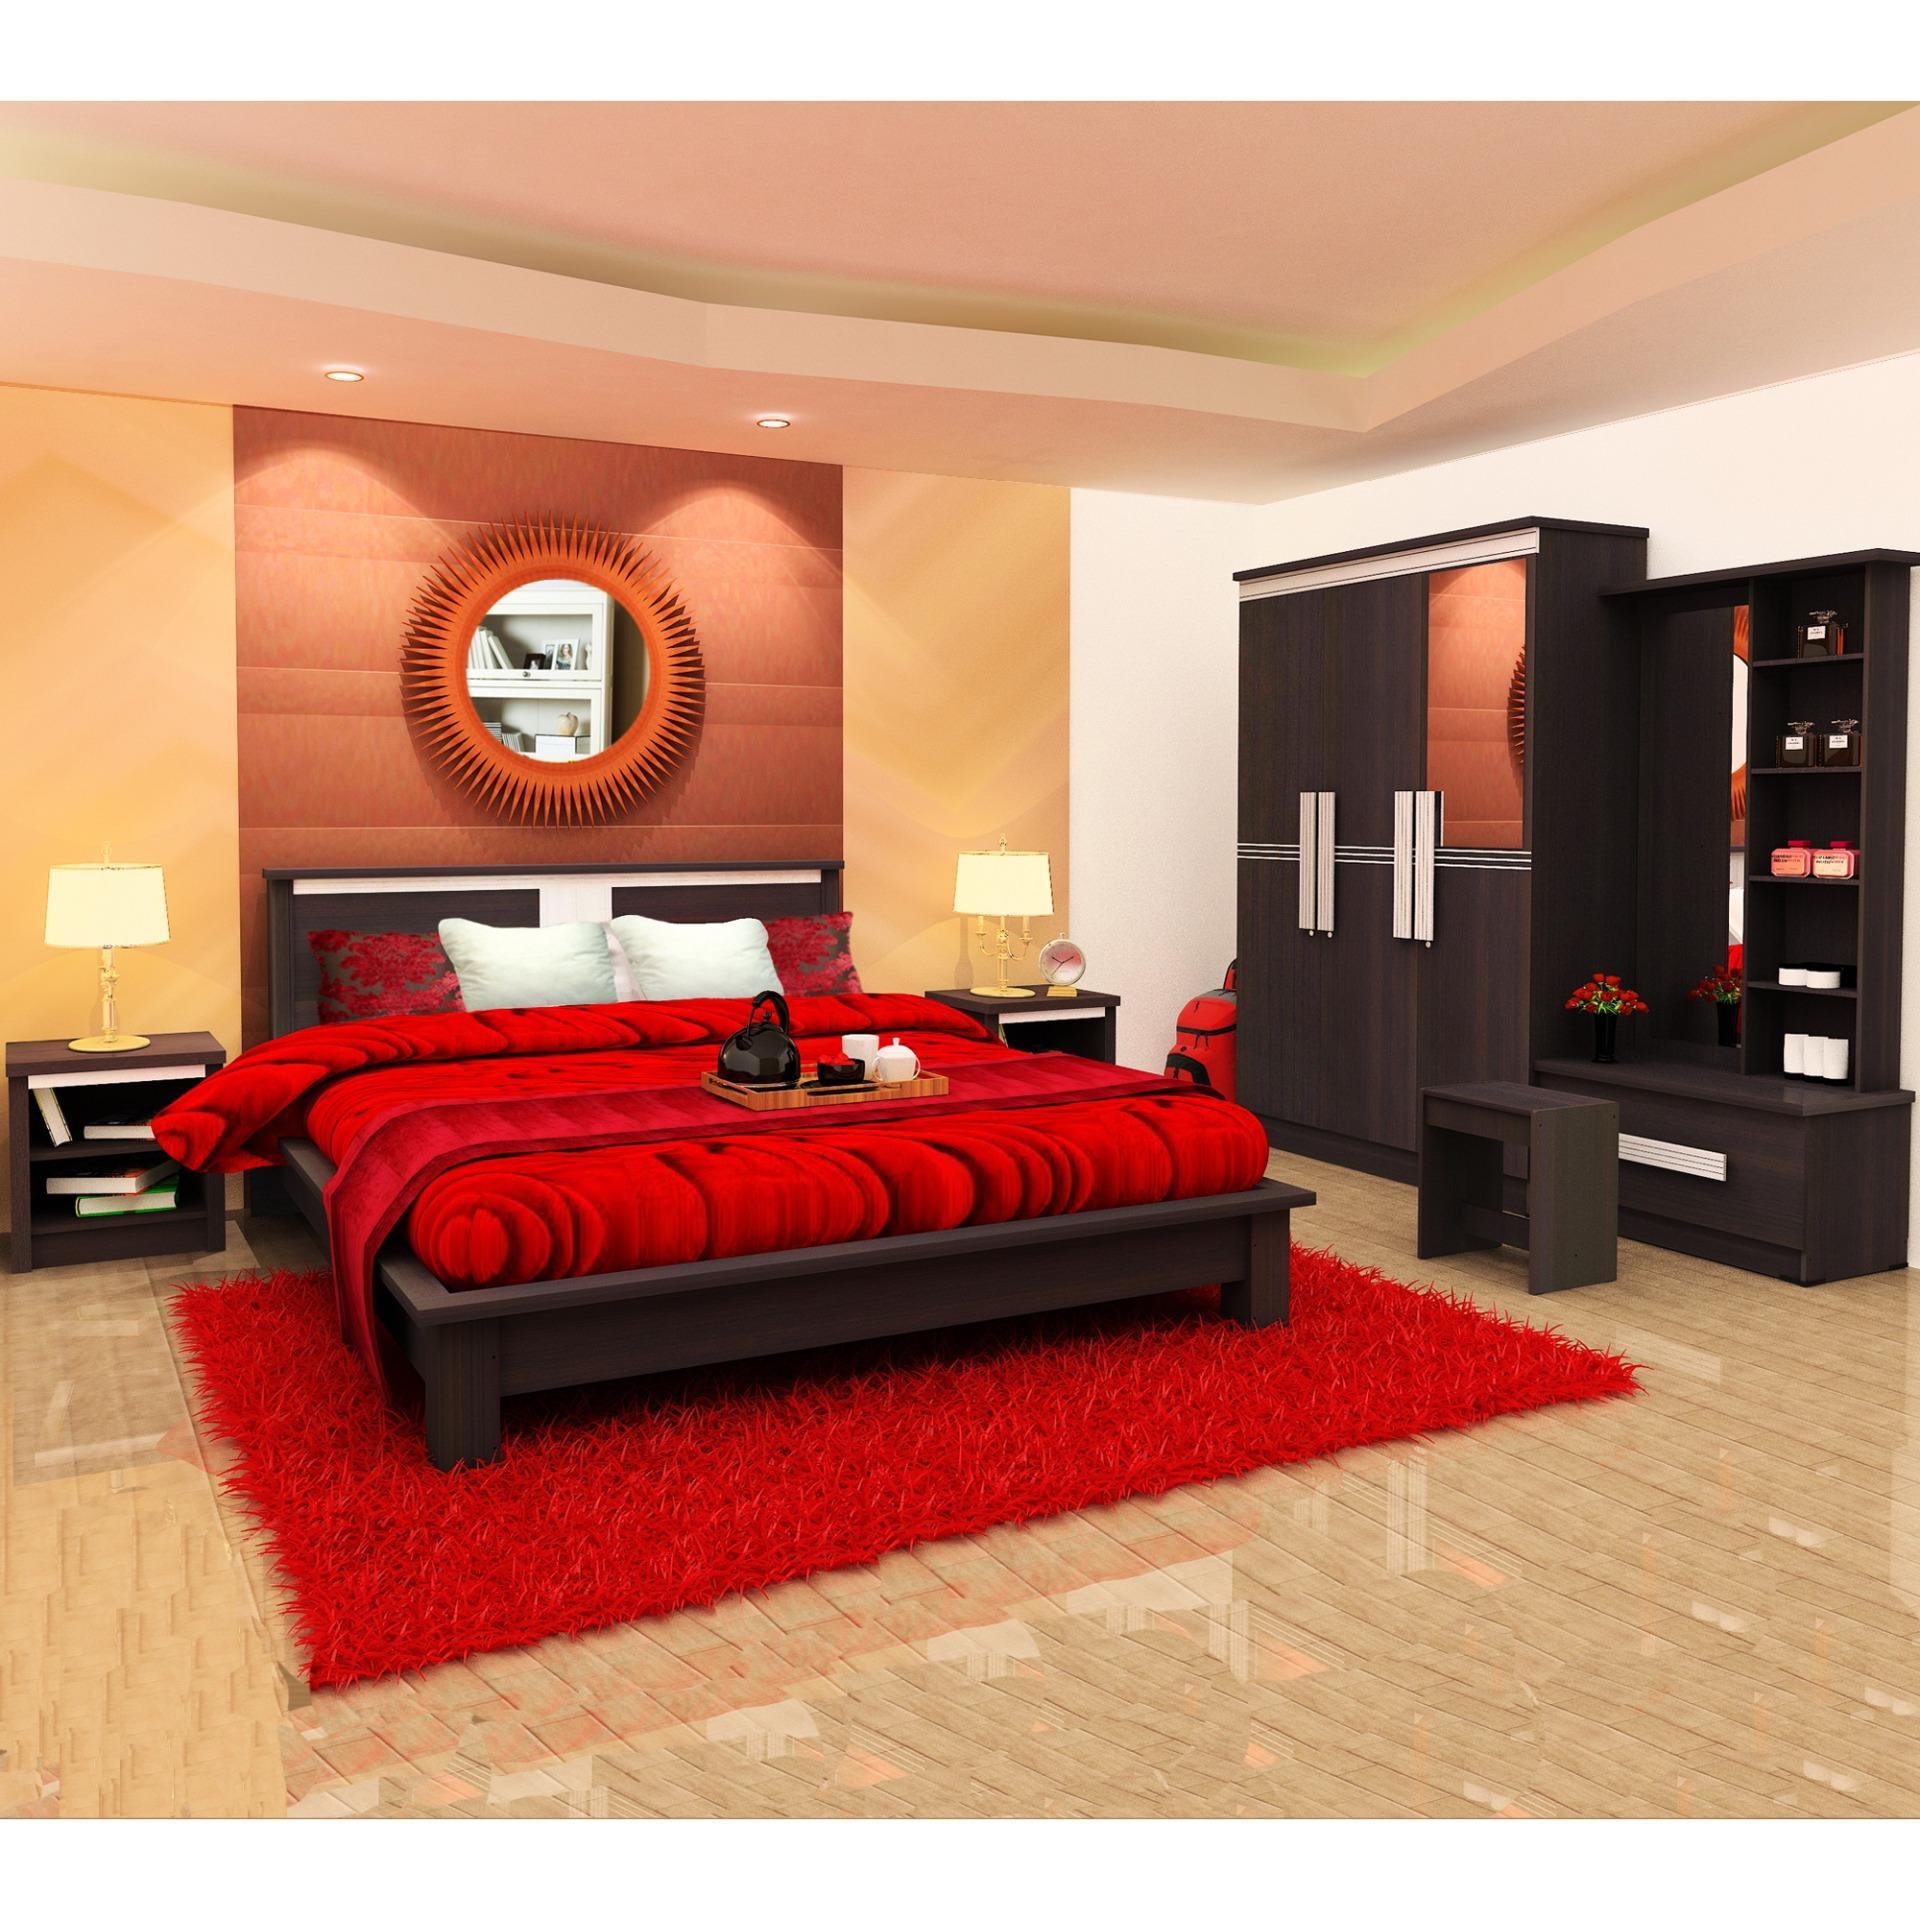 Lemari Pakaian, Ranjang, Nakas, Meja Rias (bedroom Set Red) By Furniture Minimalis.